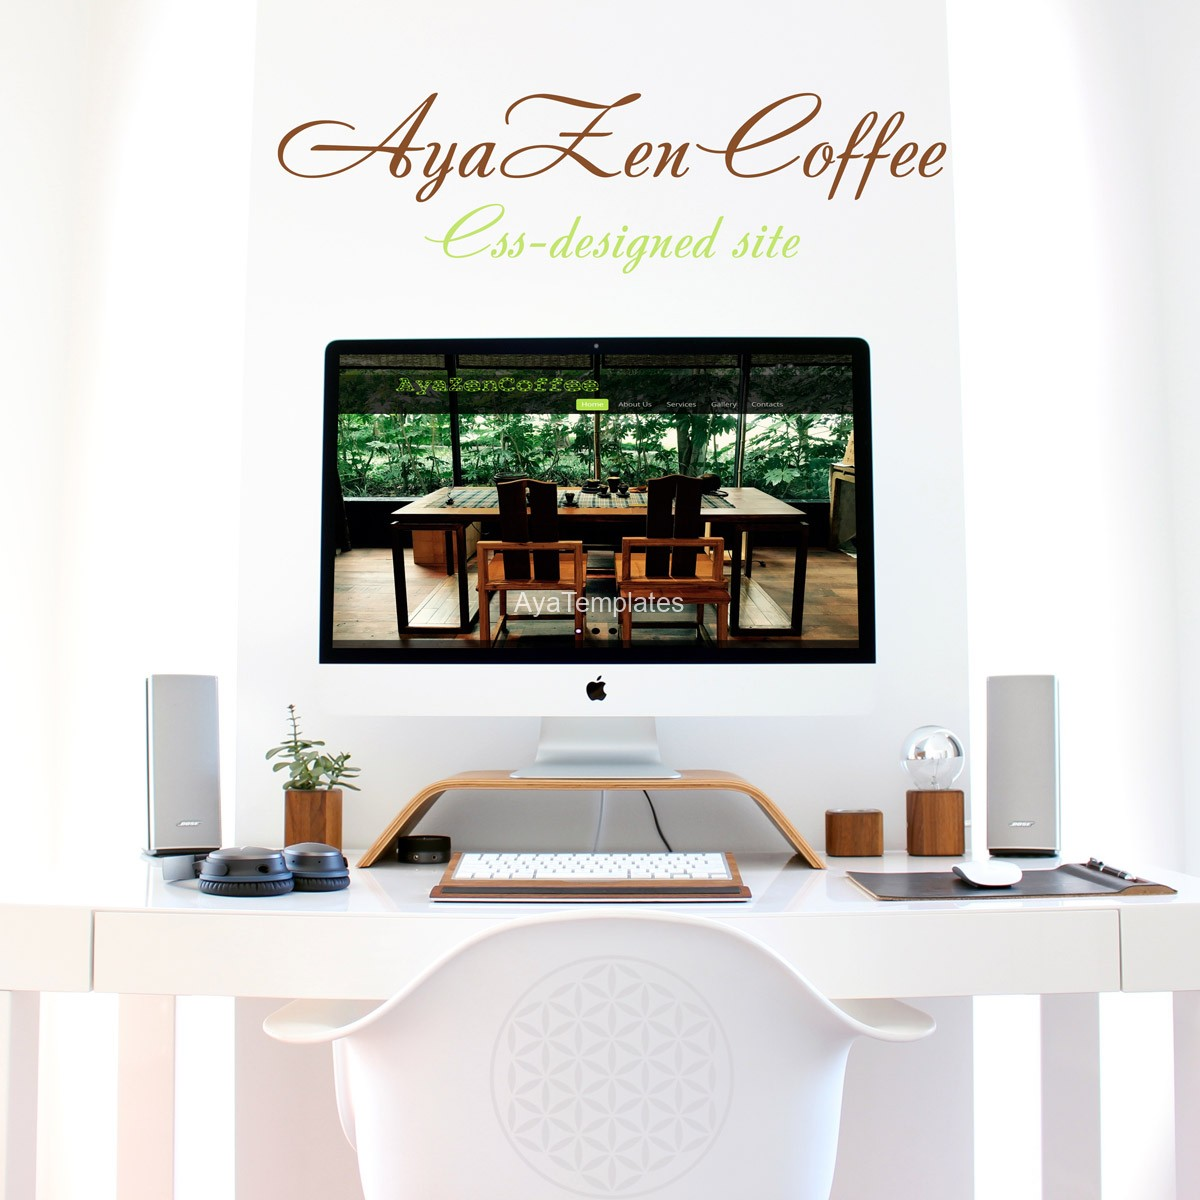 AyaZenCoffee-css-designed-site-ayatemplates